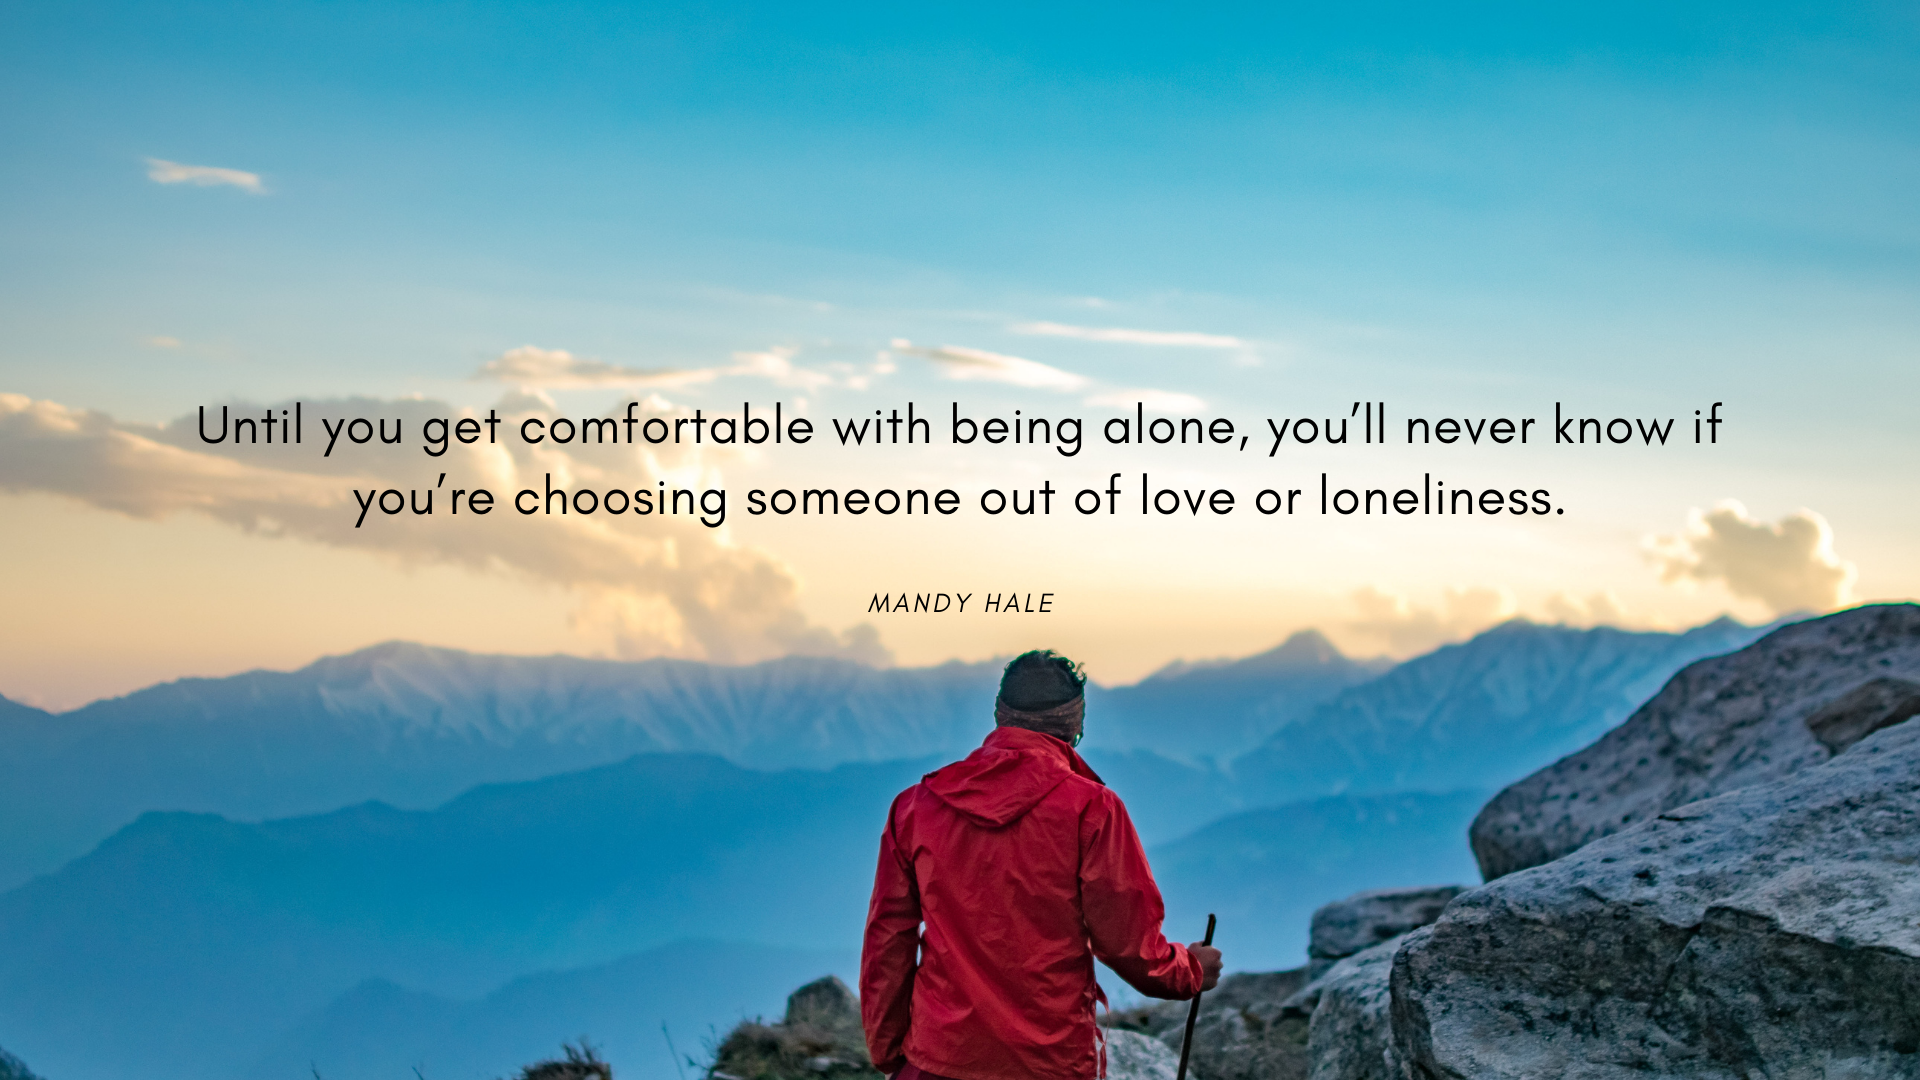 Until you get comfortable with being alone, you'll never know if you're choosing someone out of love or loneliness. – Mandy Hale[1920×1080][OC]